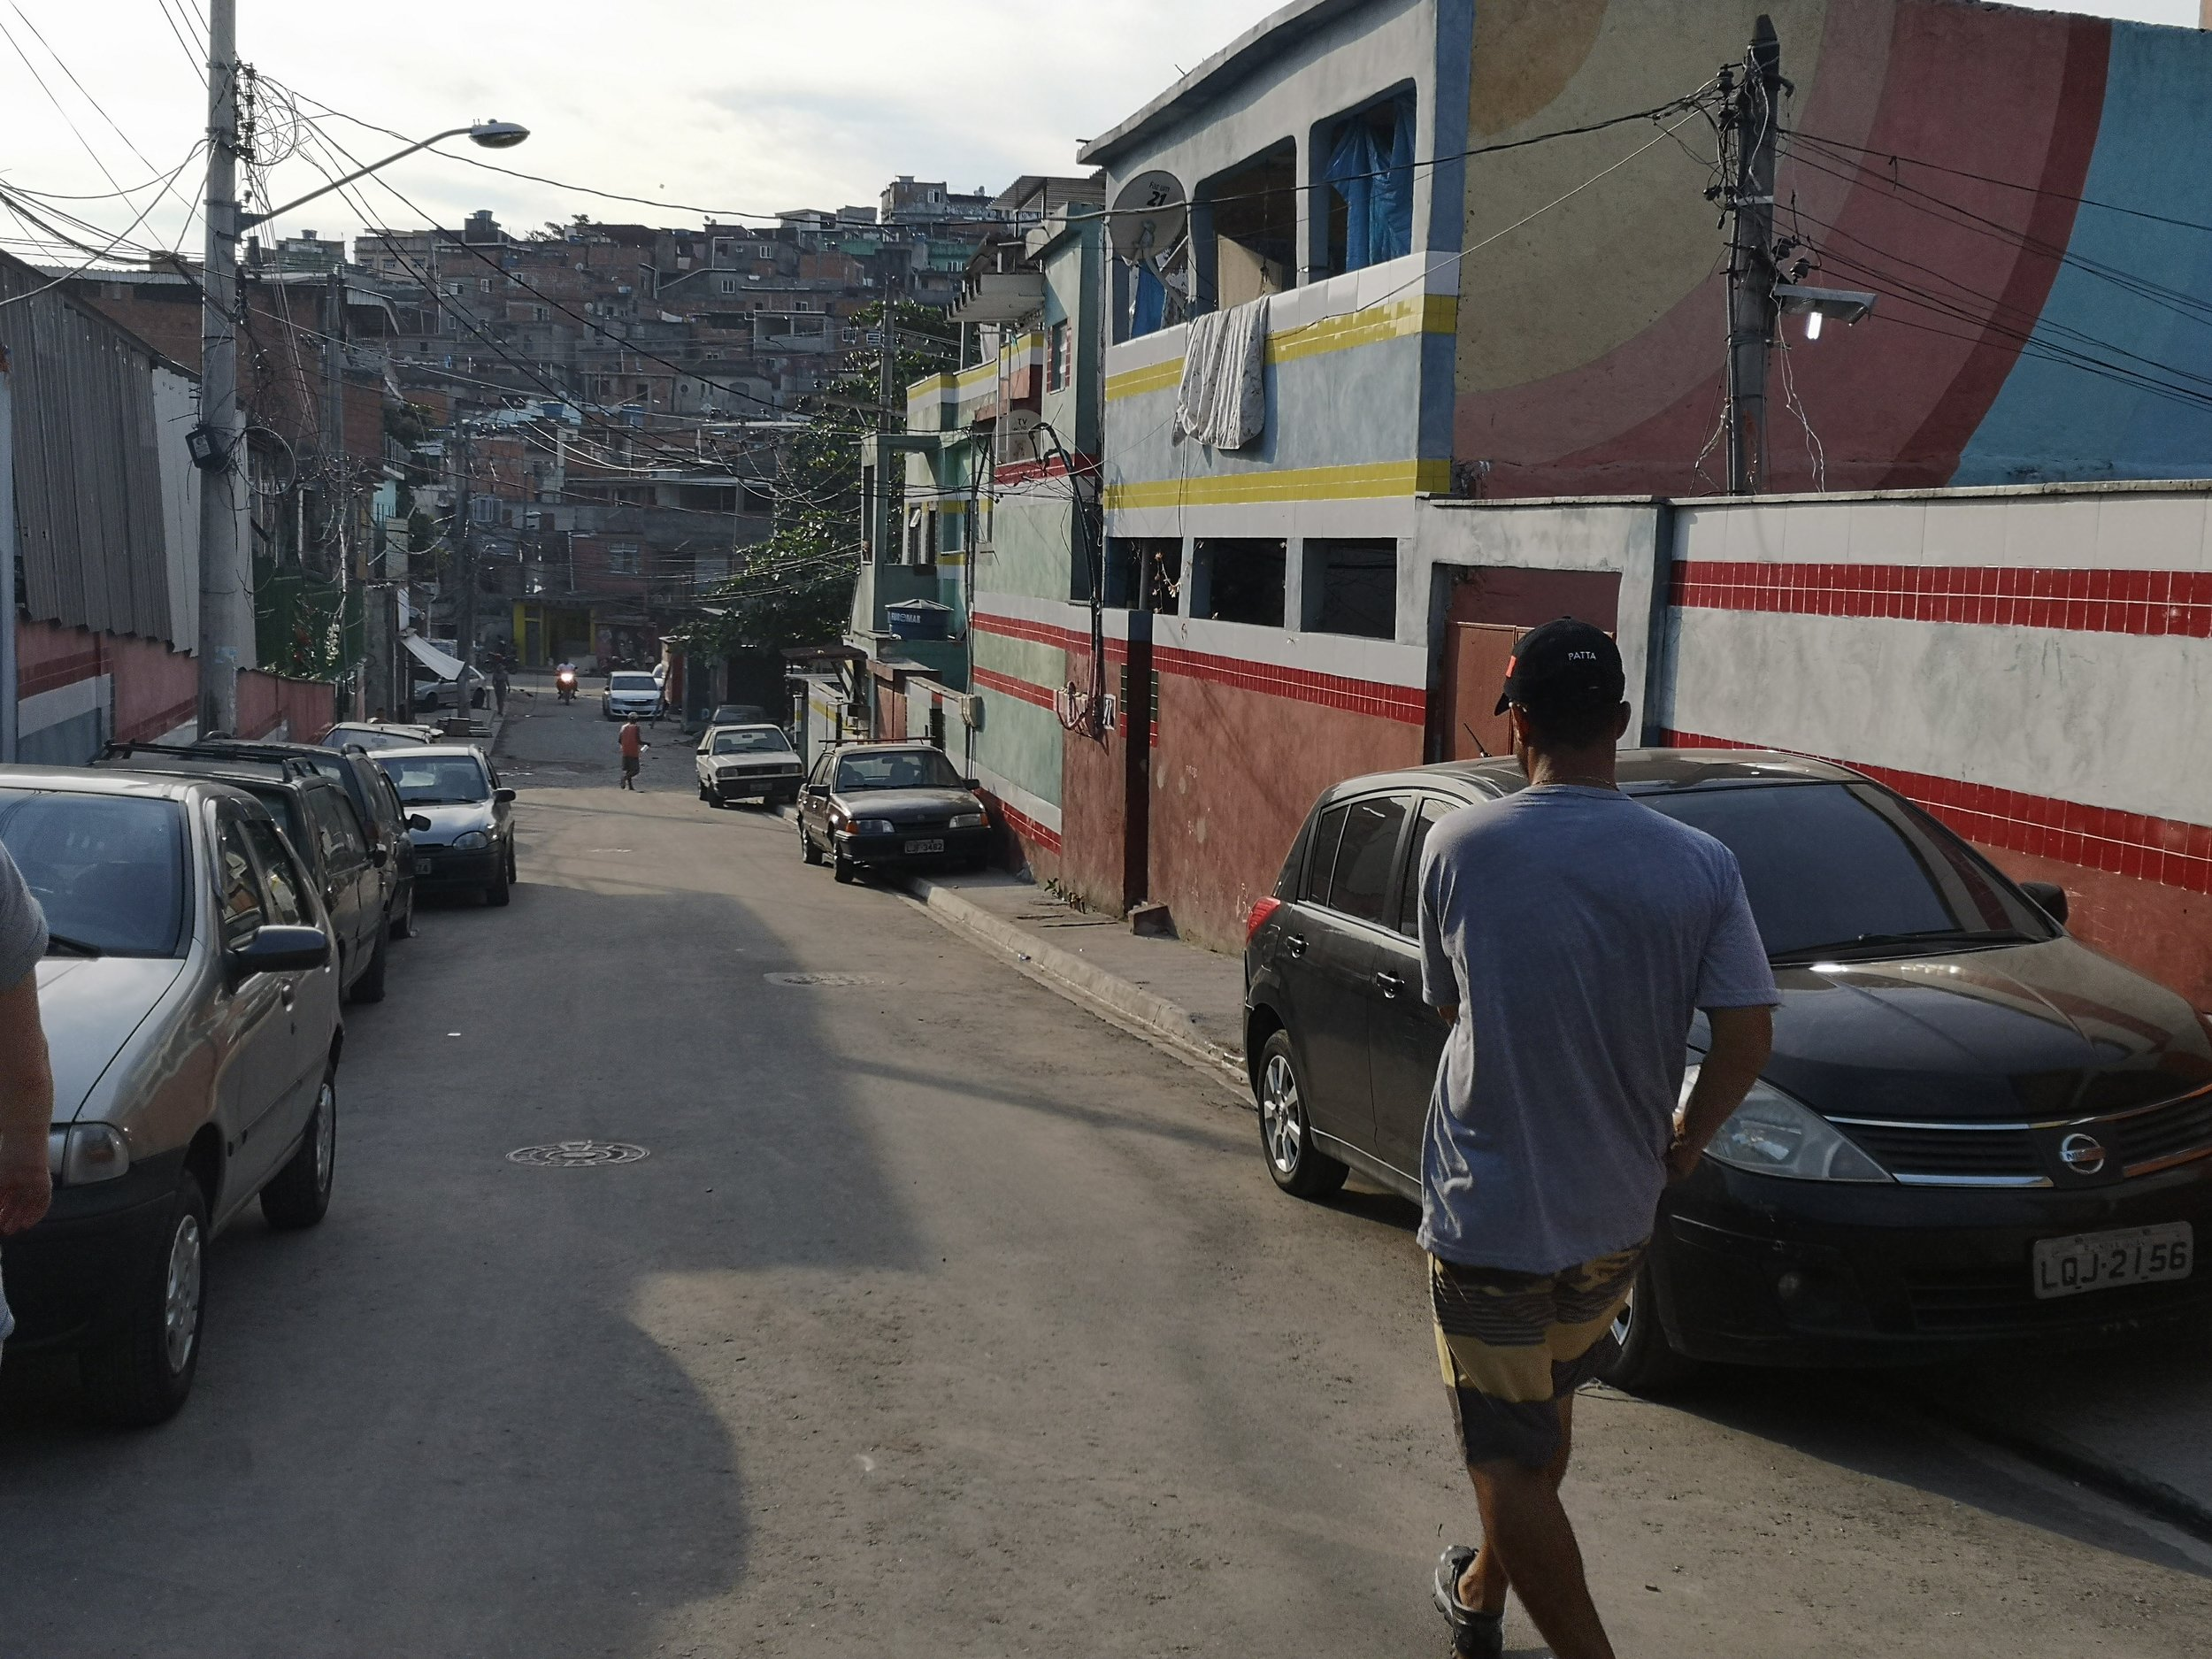 Walking back to the car with Fabio, after an amazing day in Vila Cruzeiro . The signature style of the Favella Painting also here visible on the houses.